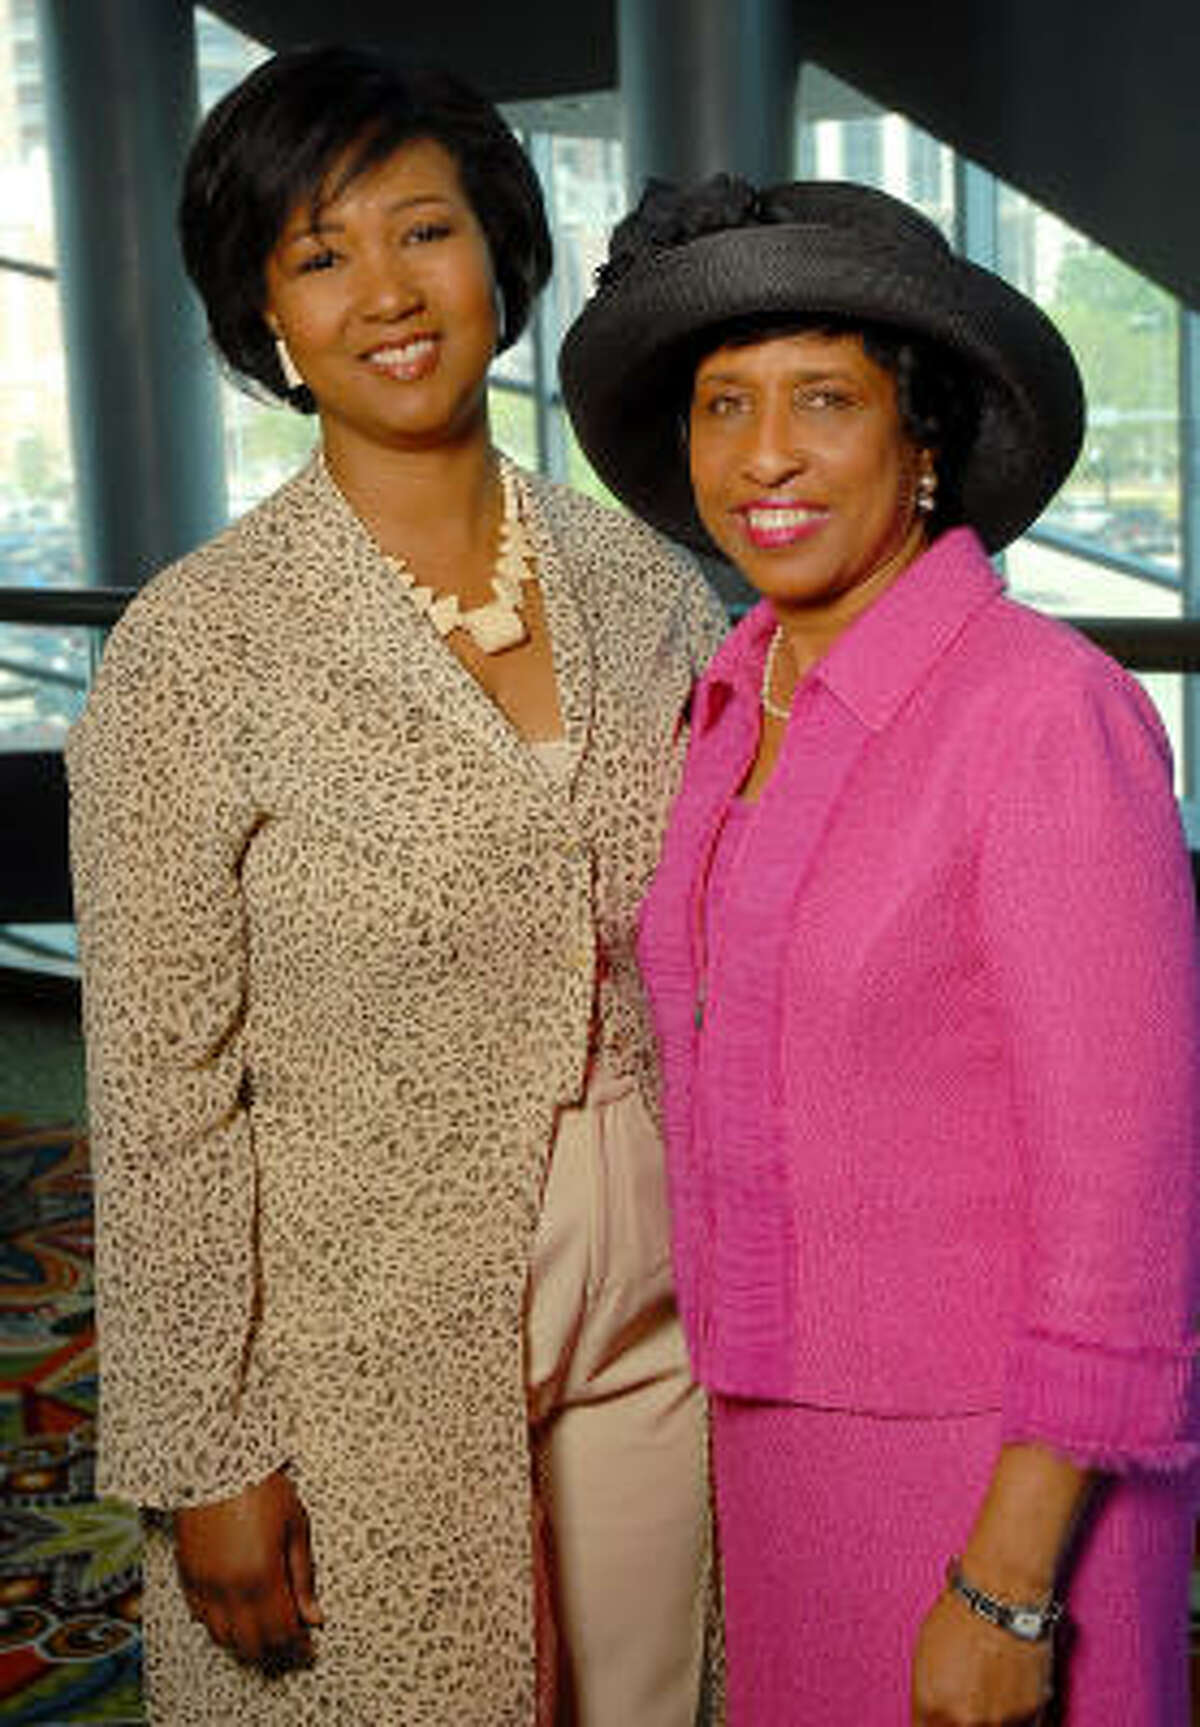 Mae Jemison, left, and Sharon Michael Owens